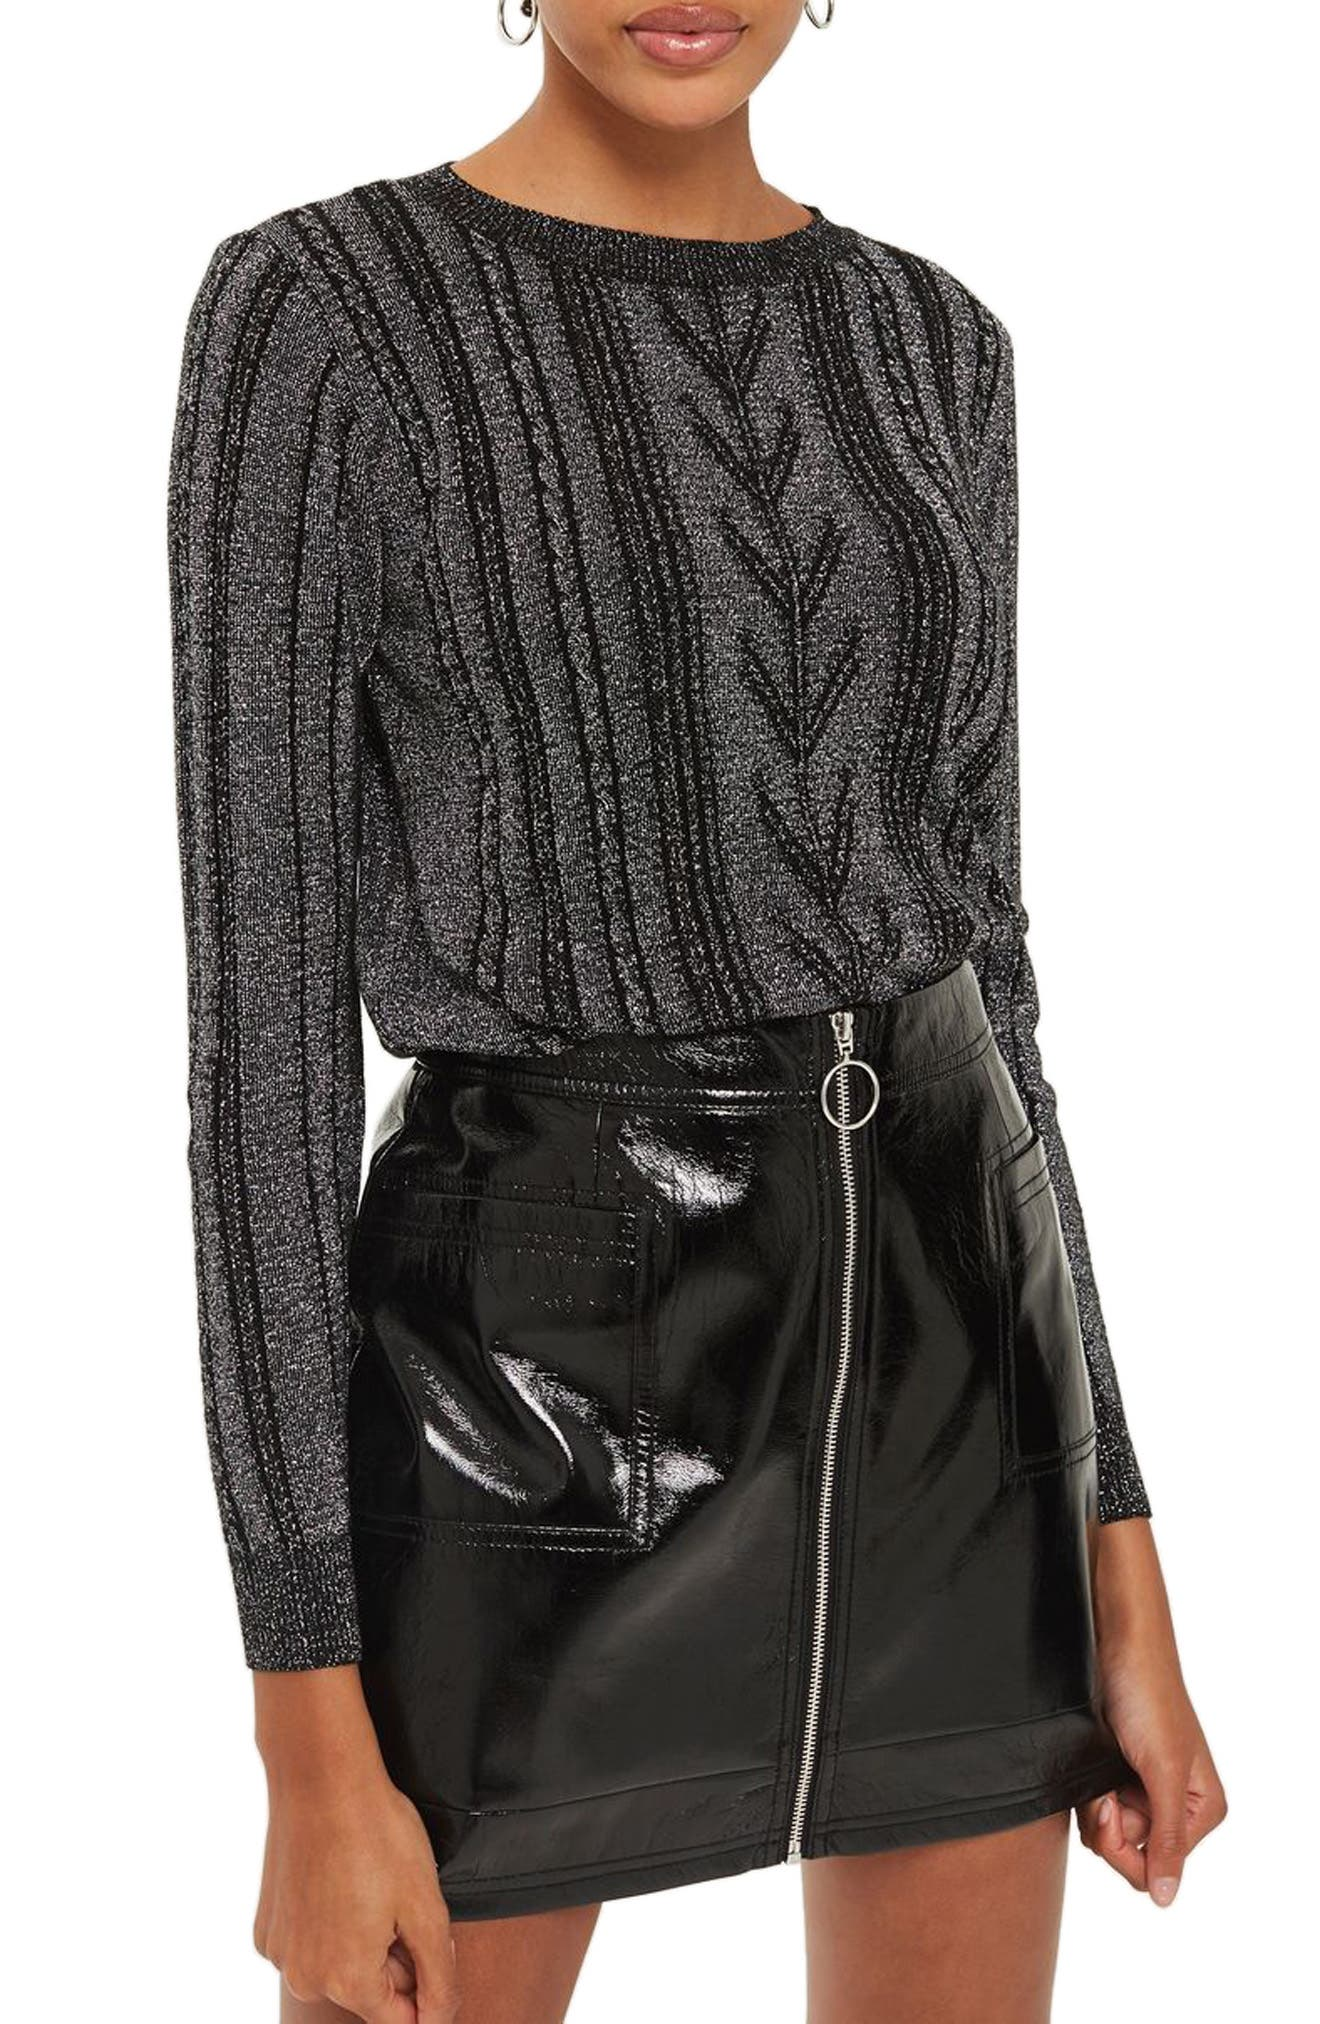 Alternate Image 1 Selected - Topshop Metallic Cable Knit Sweater